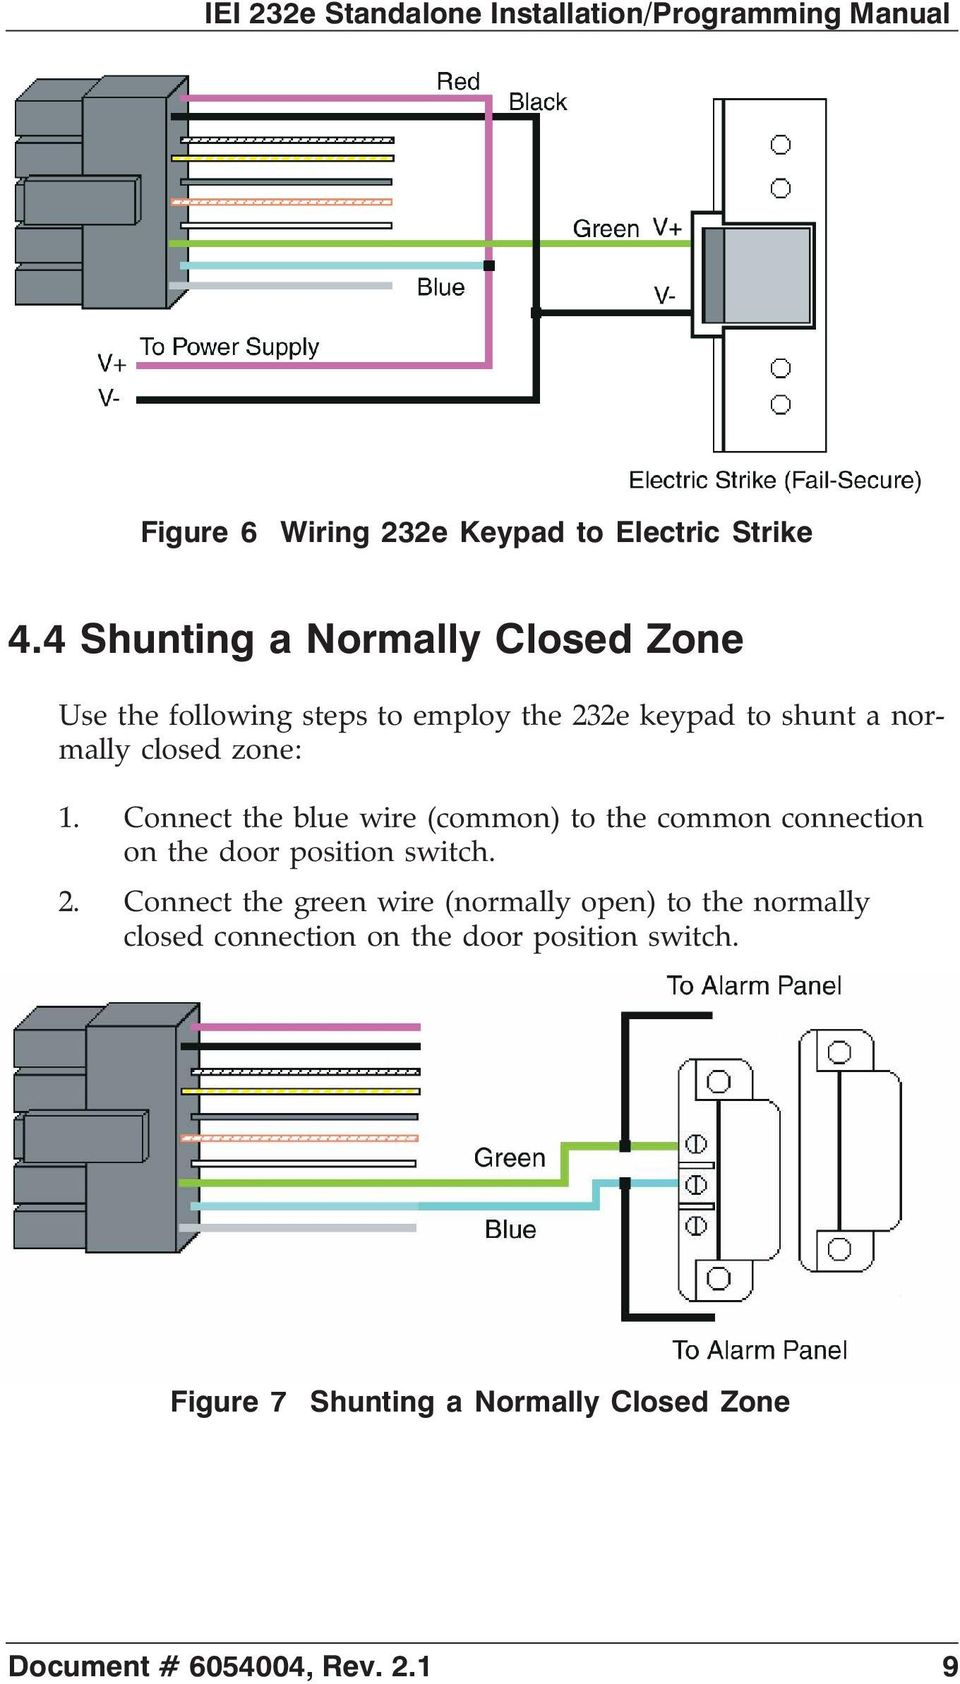 Iei 232e Standalone Tm Keypad Installation Programming Manual Pdf Four Digit Operated Switch 1 Connect The Blue Wire Common To Connection On Door